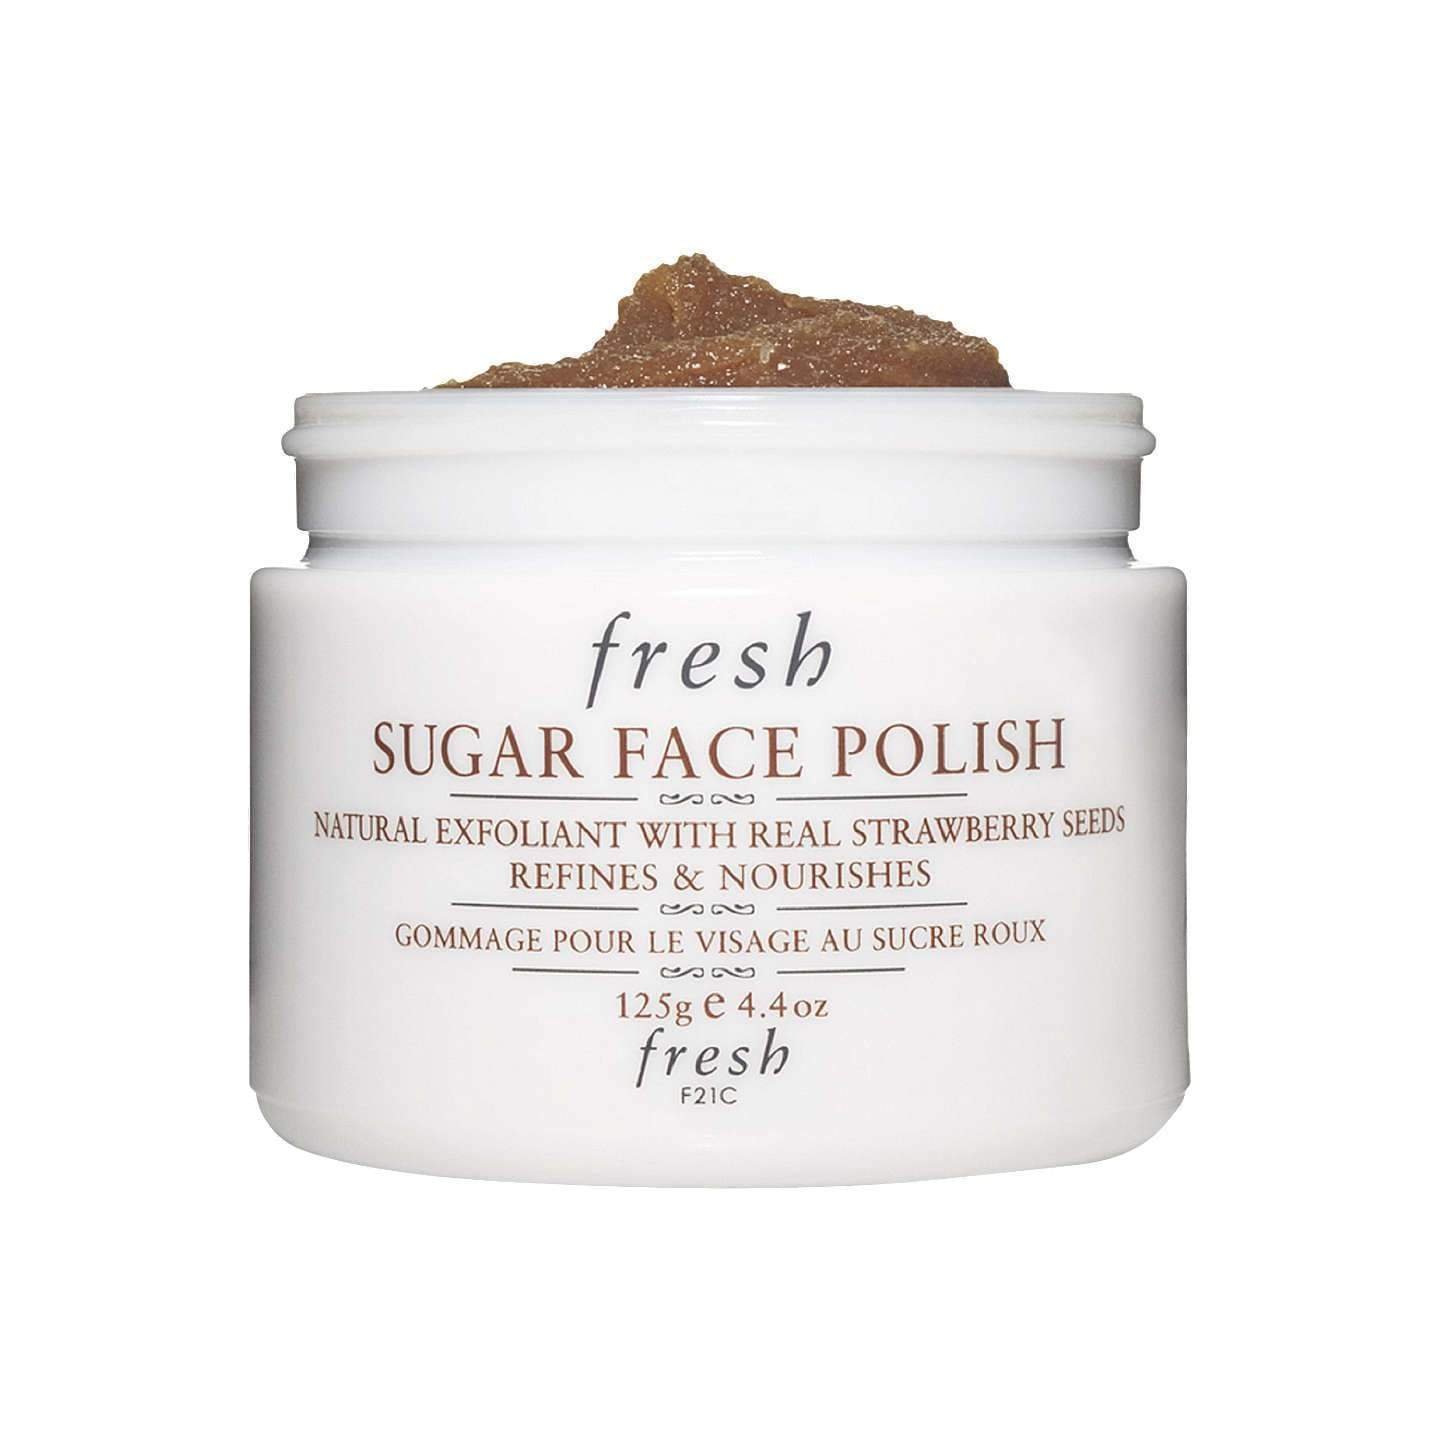 Fresh Sugar Face Polish, 125g, Skin Care, London Loves Beauty